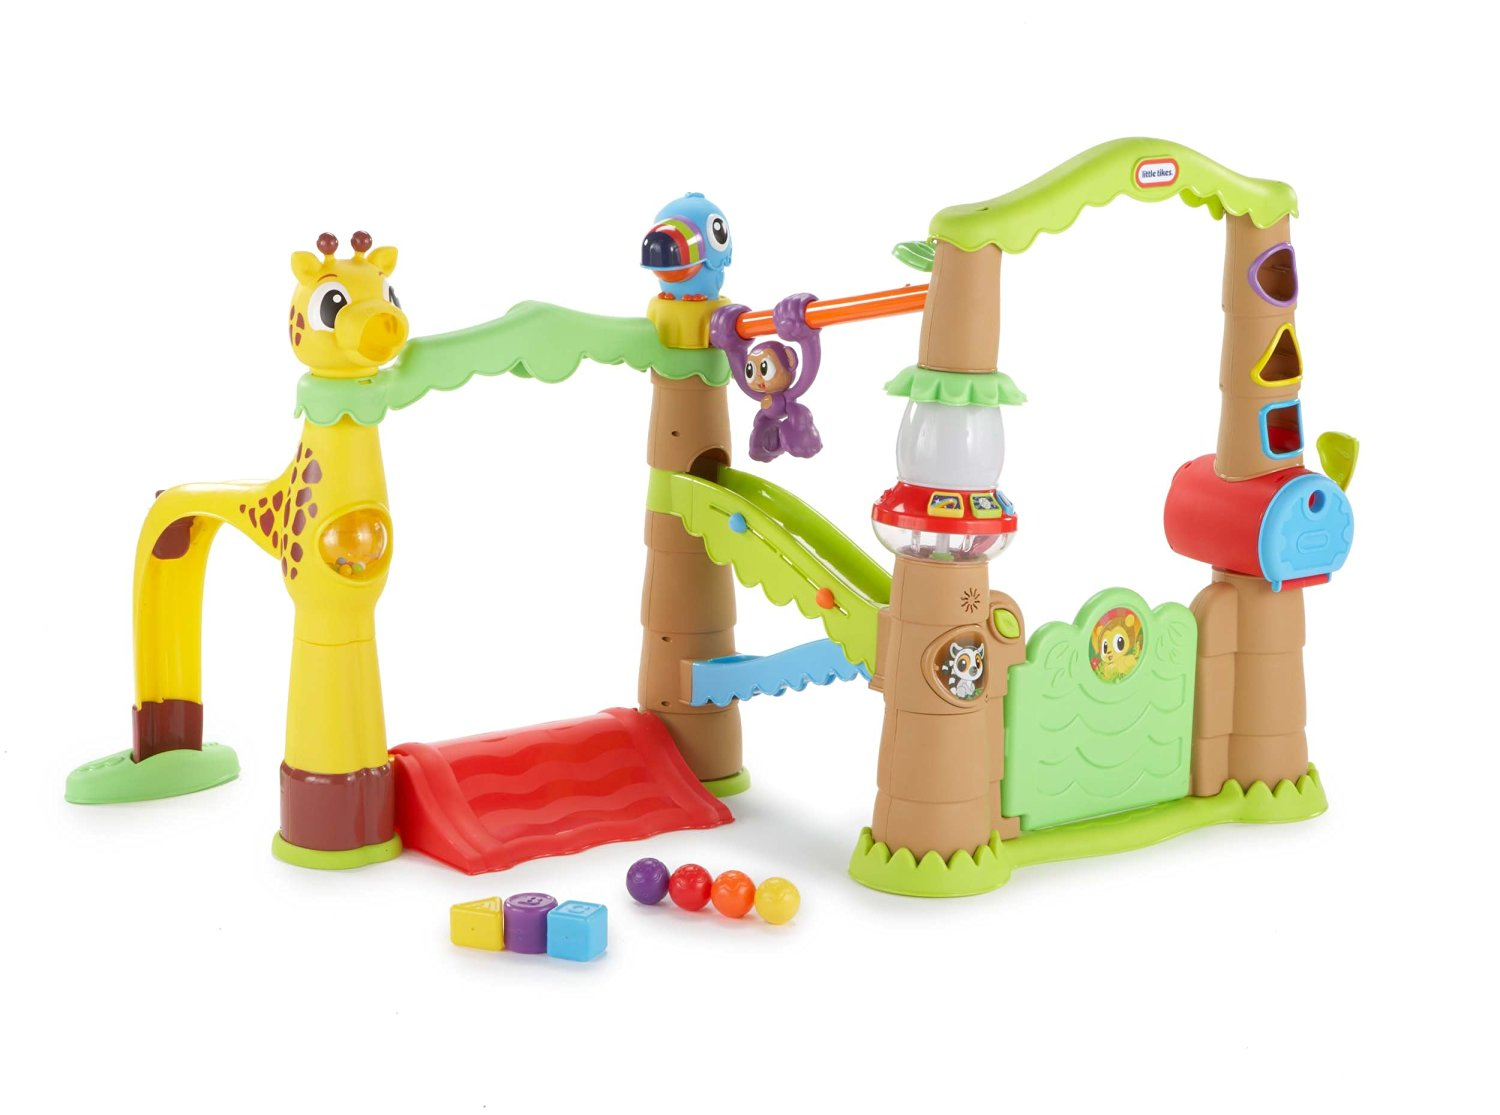 Little Tikes Light and Go Activity Garden Treehouse - - the perfect gift for mobile babies, ages 9-24 months